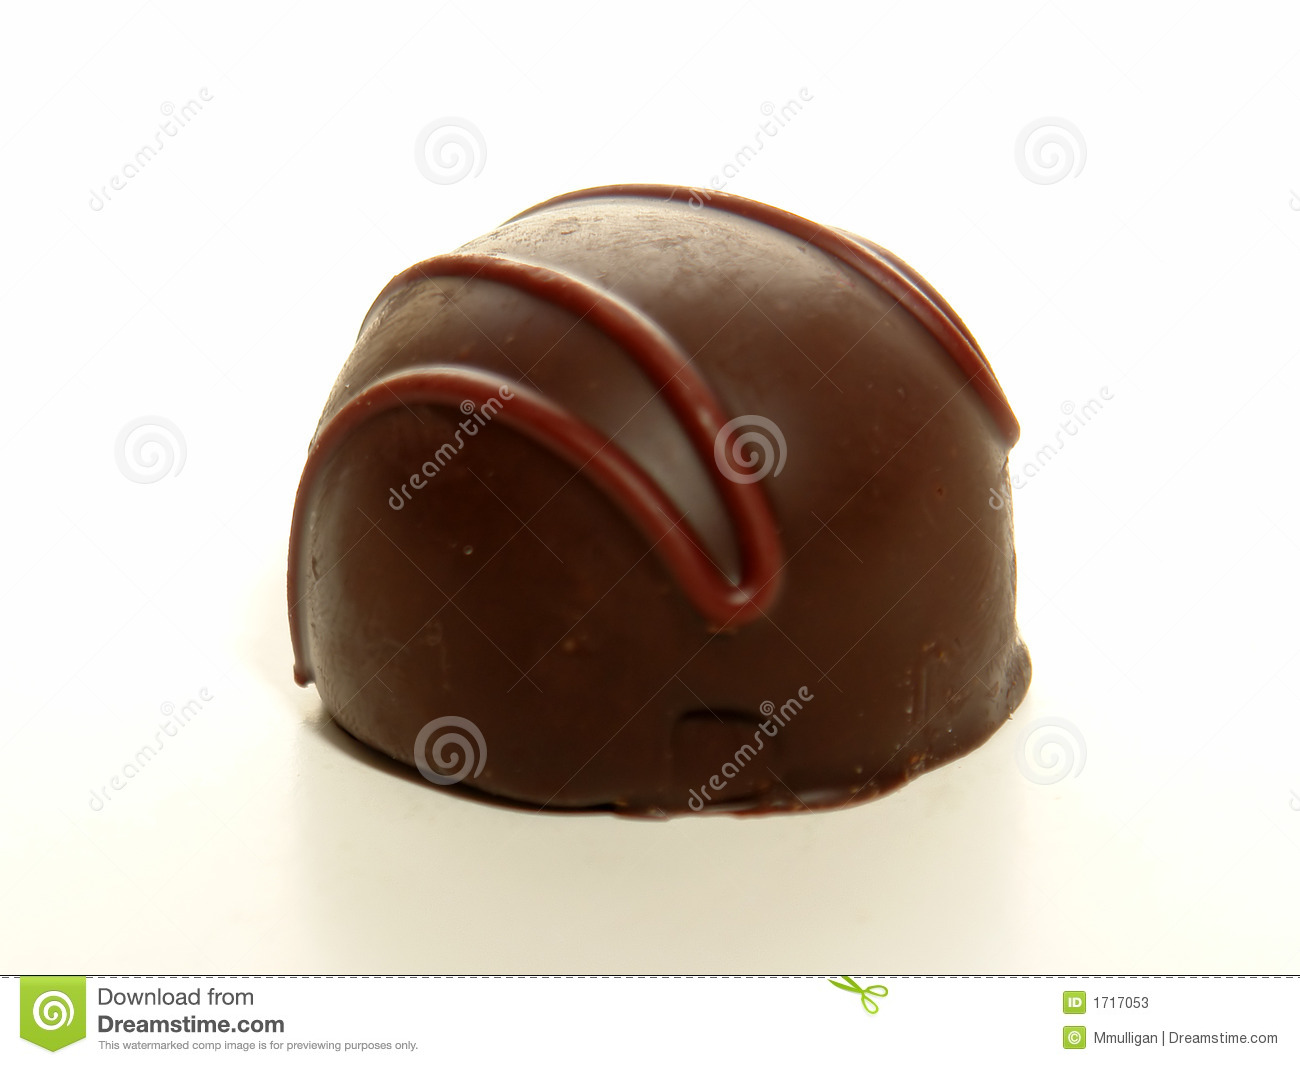 Delicious dark chocolate truffle on a white background.